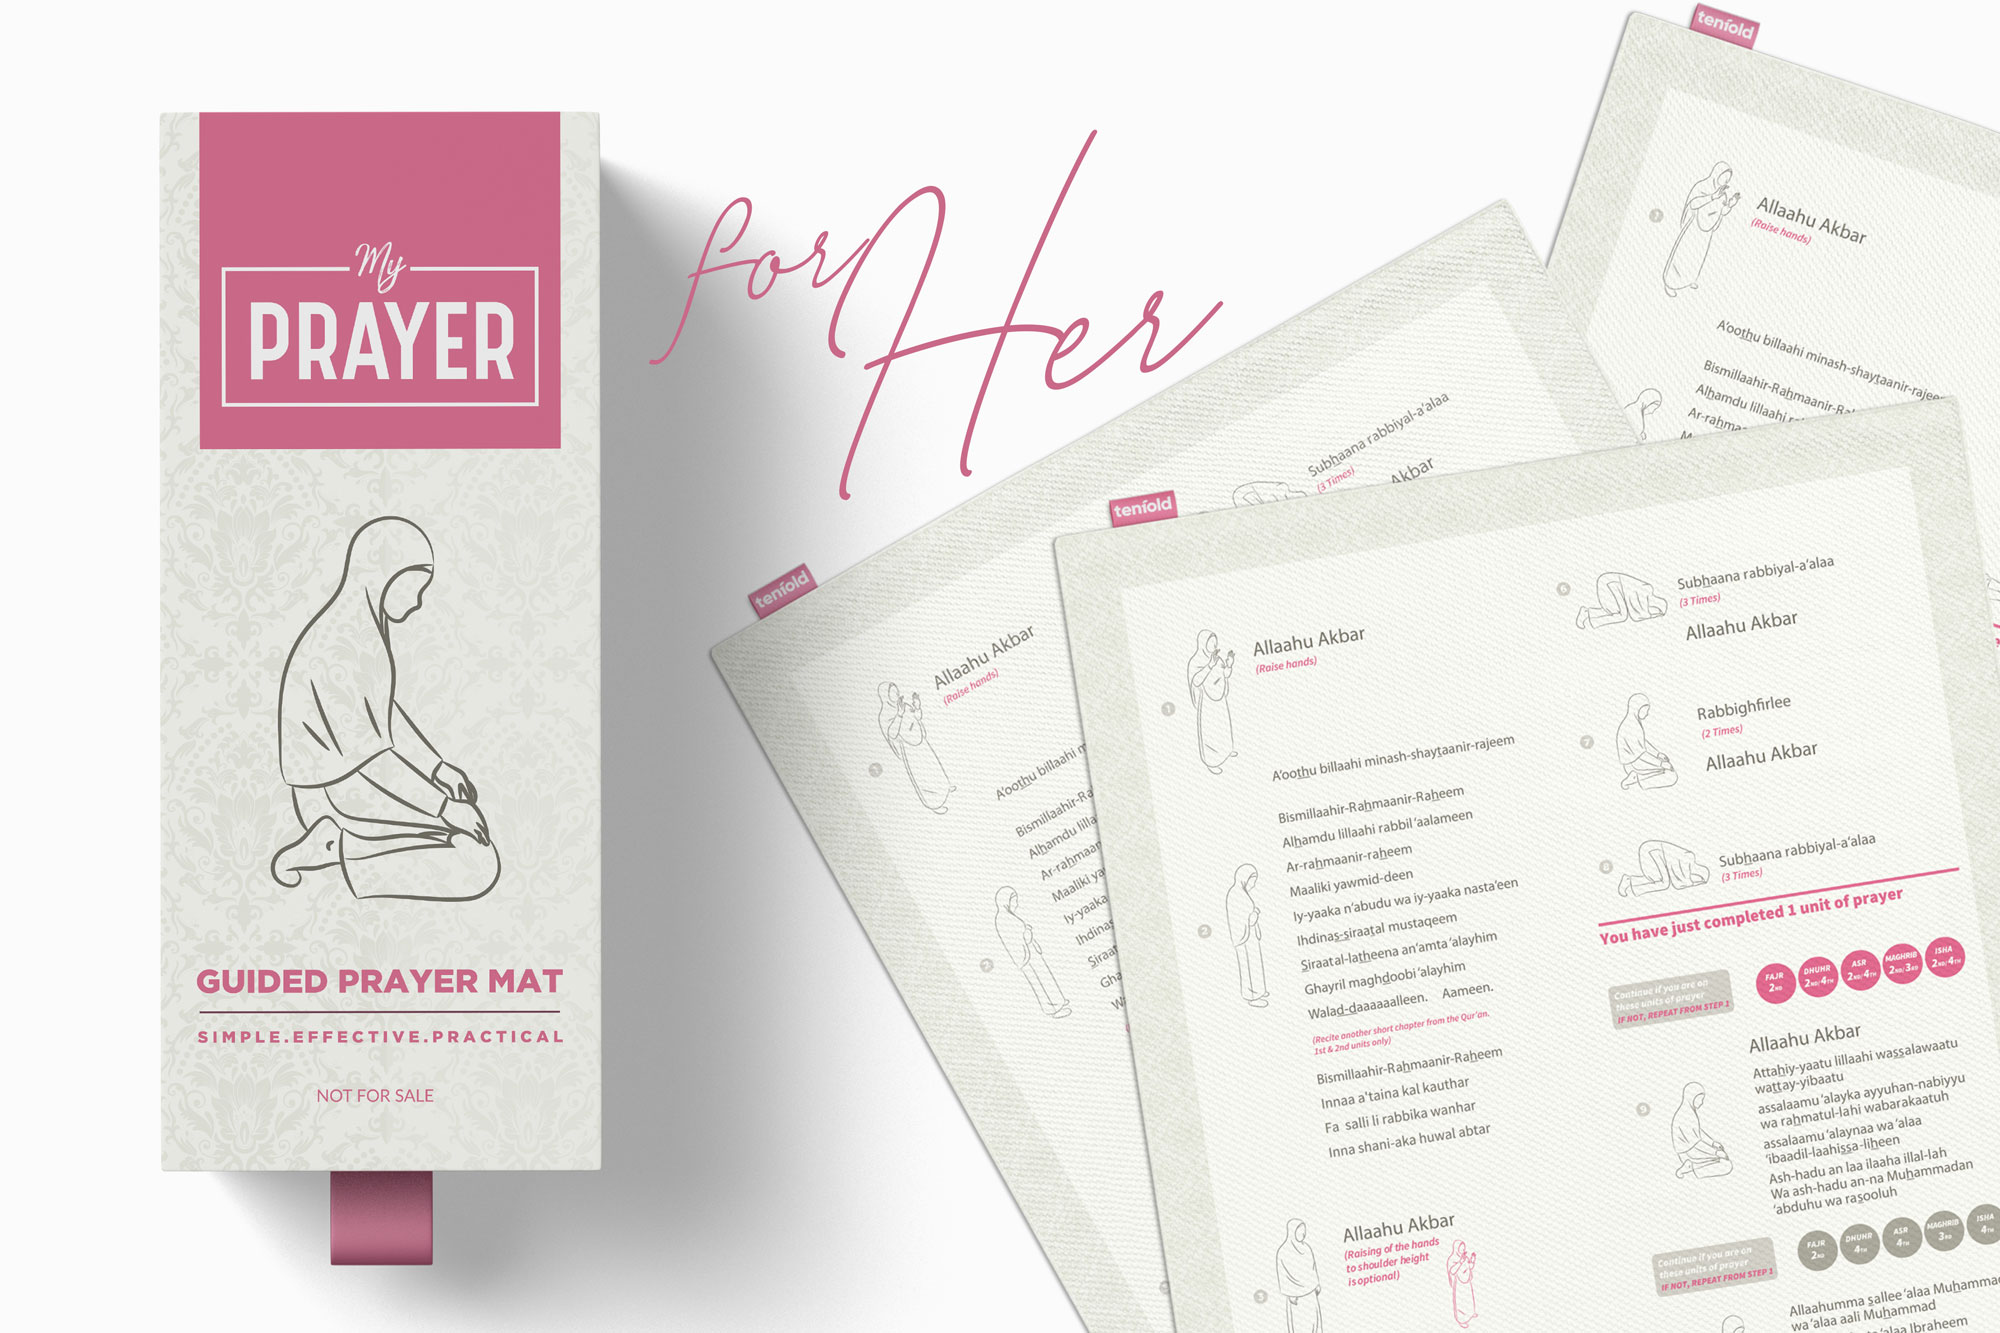 Muslim women revert learn how to pray with ease with the Guided Prayer Mat from Tenfold